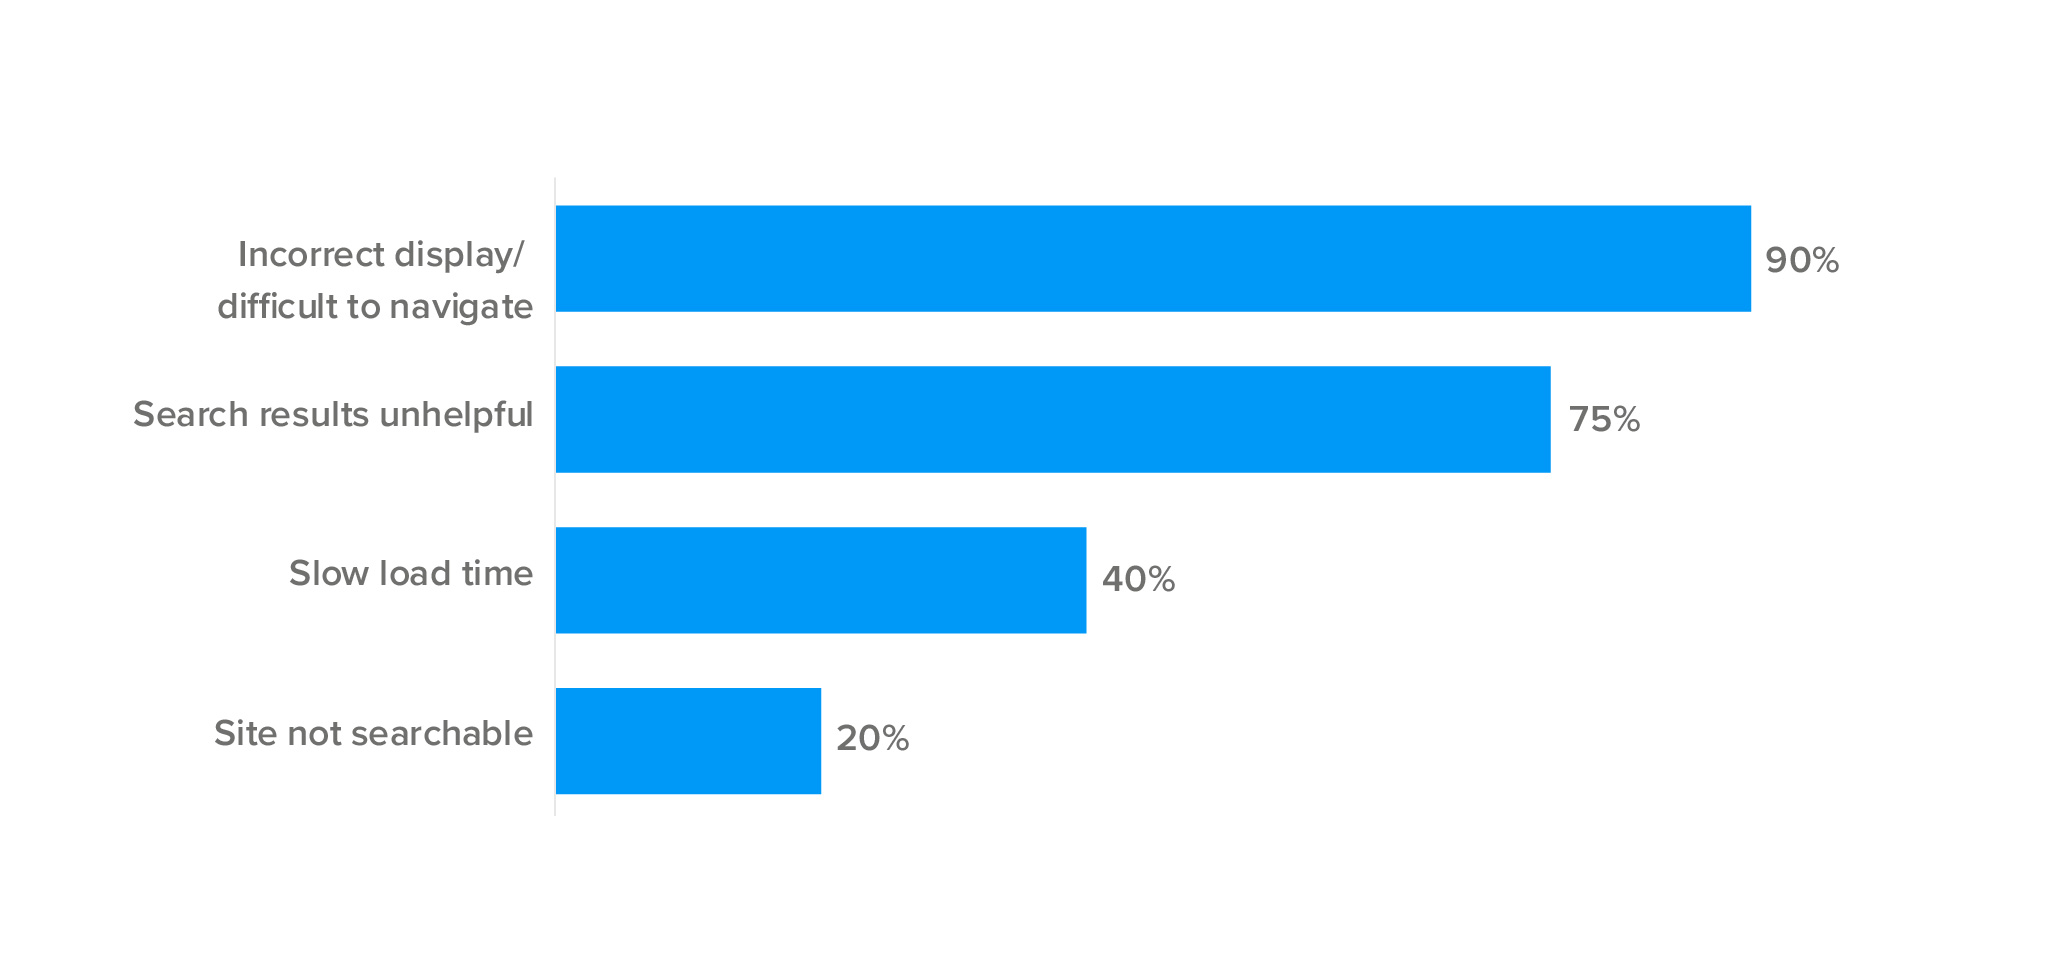 Customers experience poor navigation from mobile search